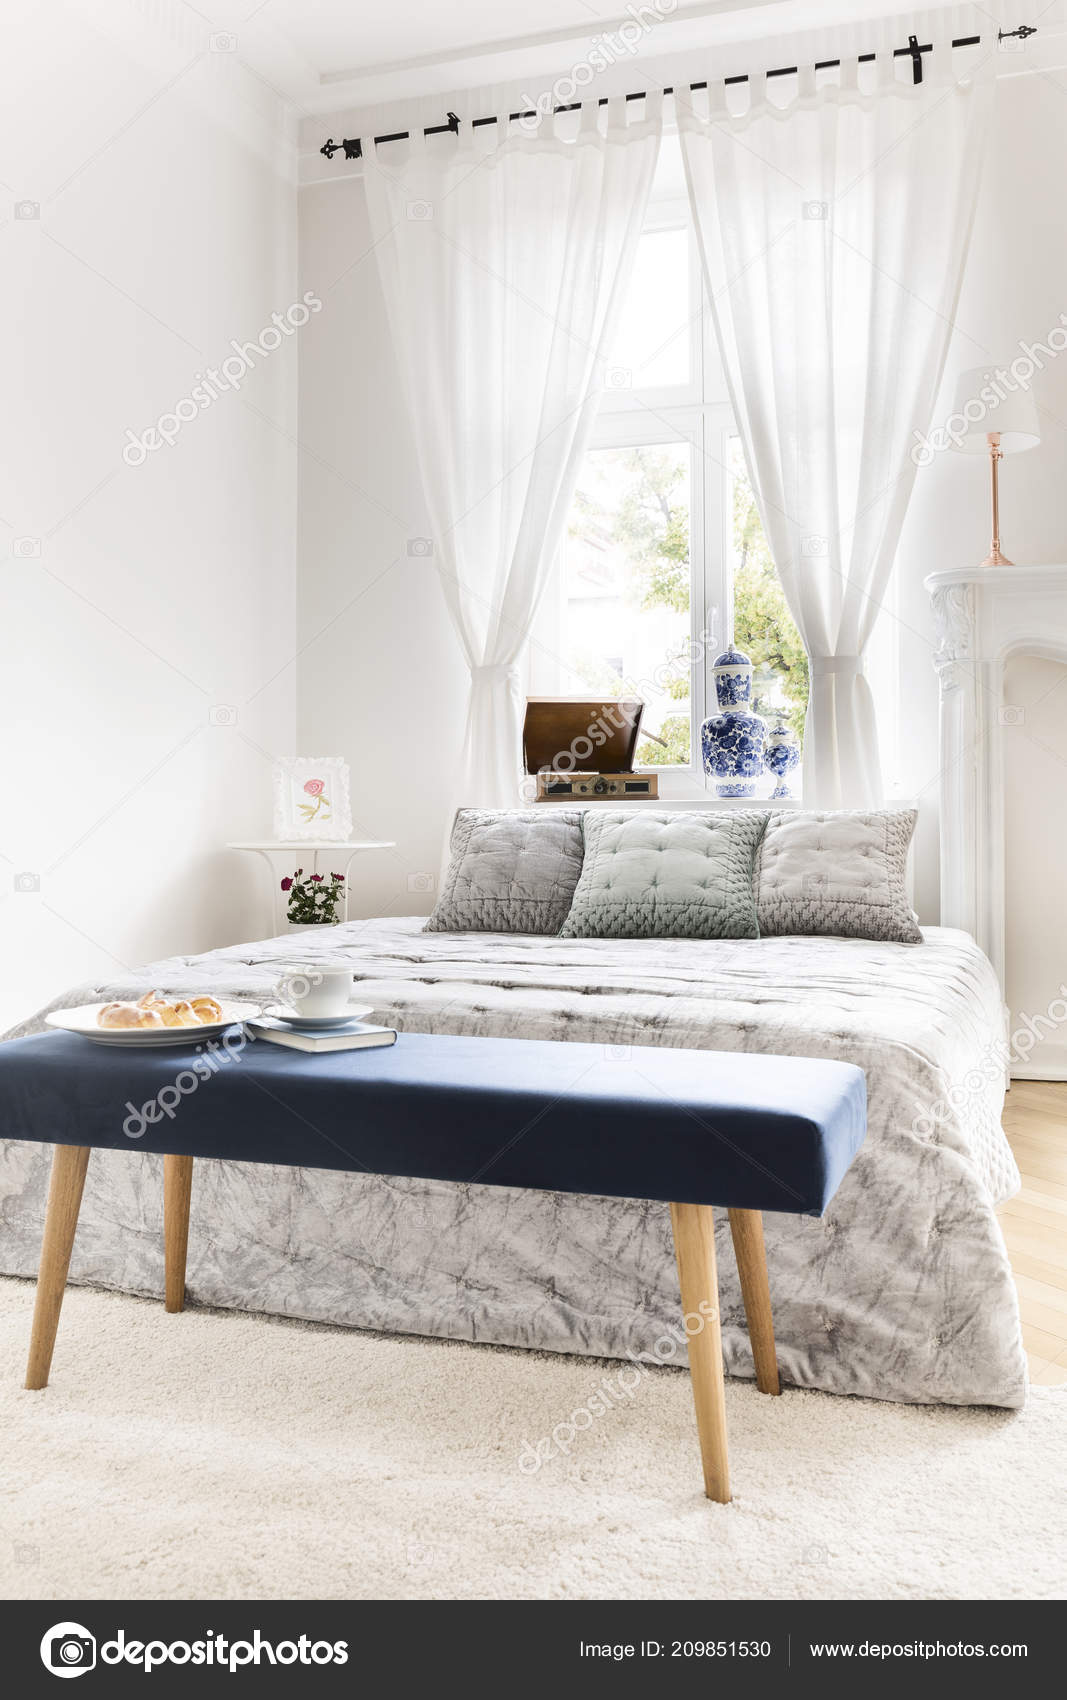 Navy Blue Bench Book Breakfast Standing King Size Bed White